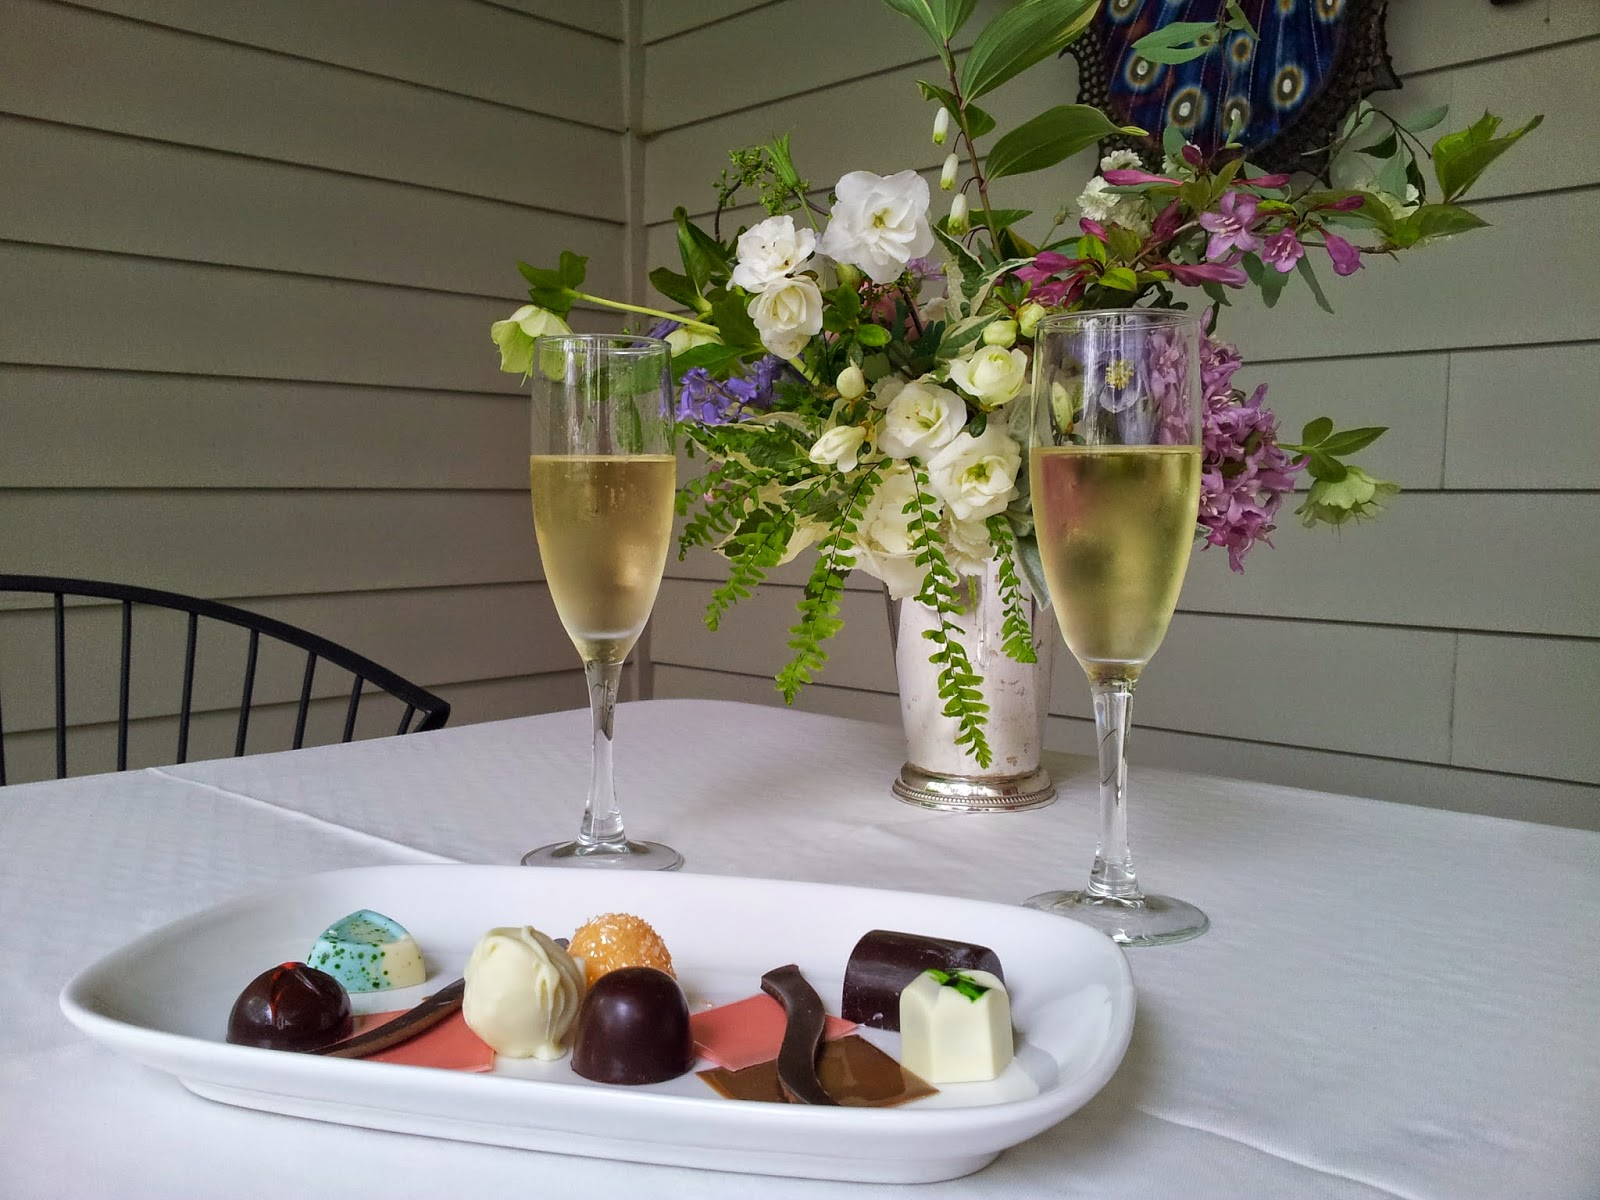 The Overall Best of 2014 in Food and Travel; Fearrington House Inn